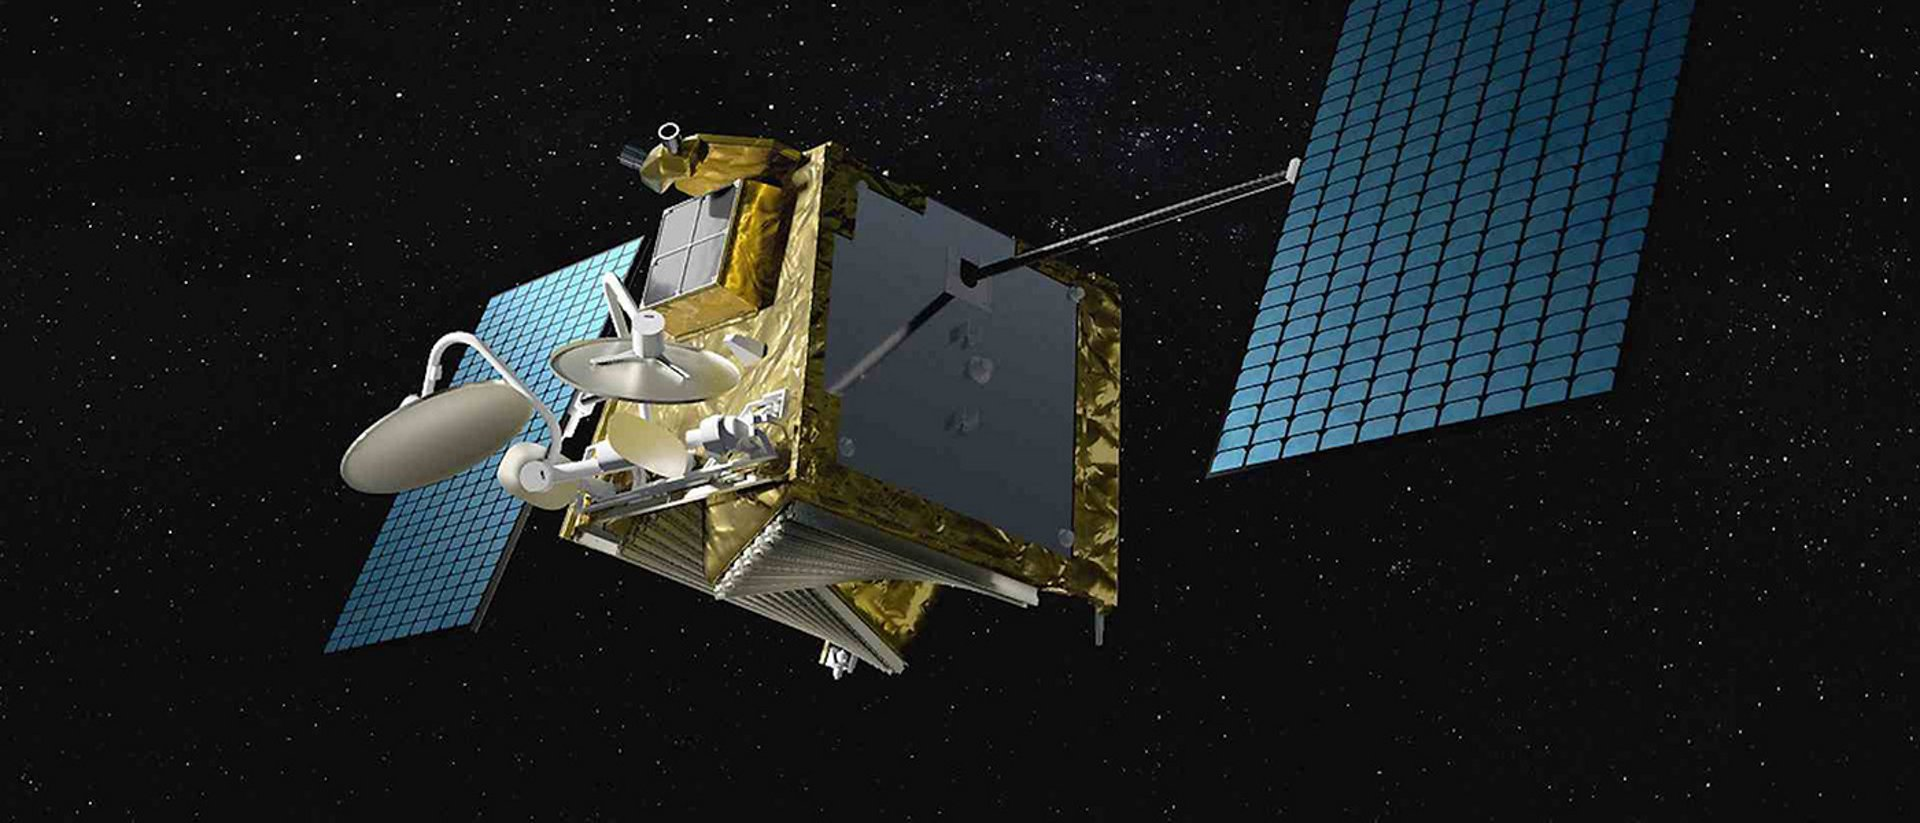 A 3D model of an Airbus-built OneWeb satellite in space